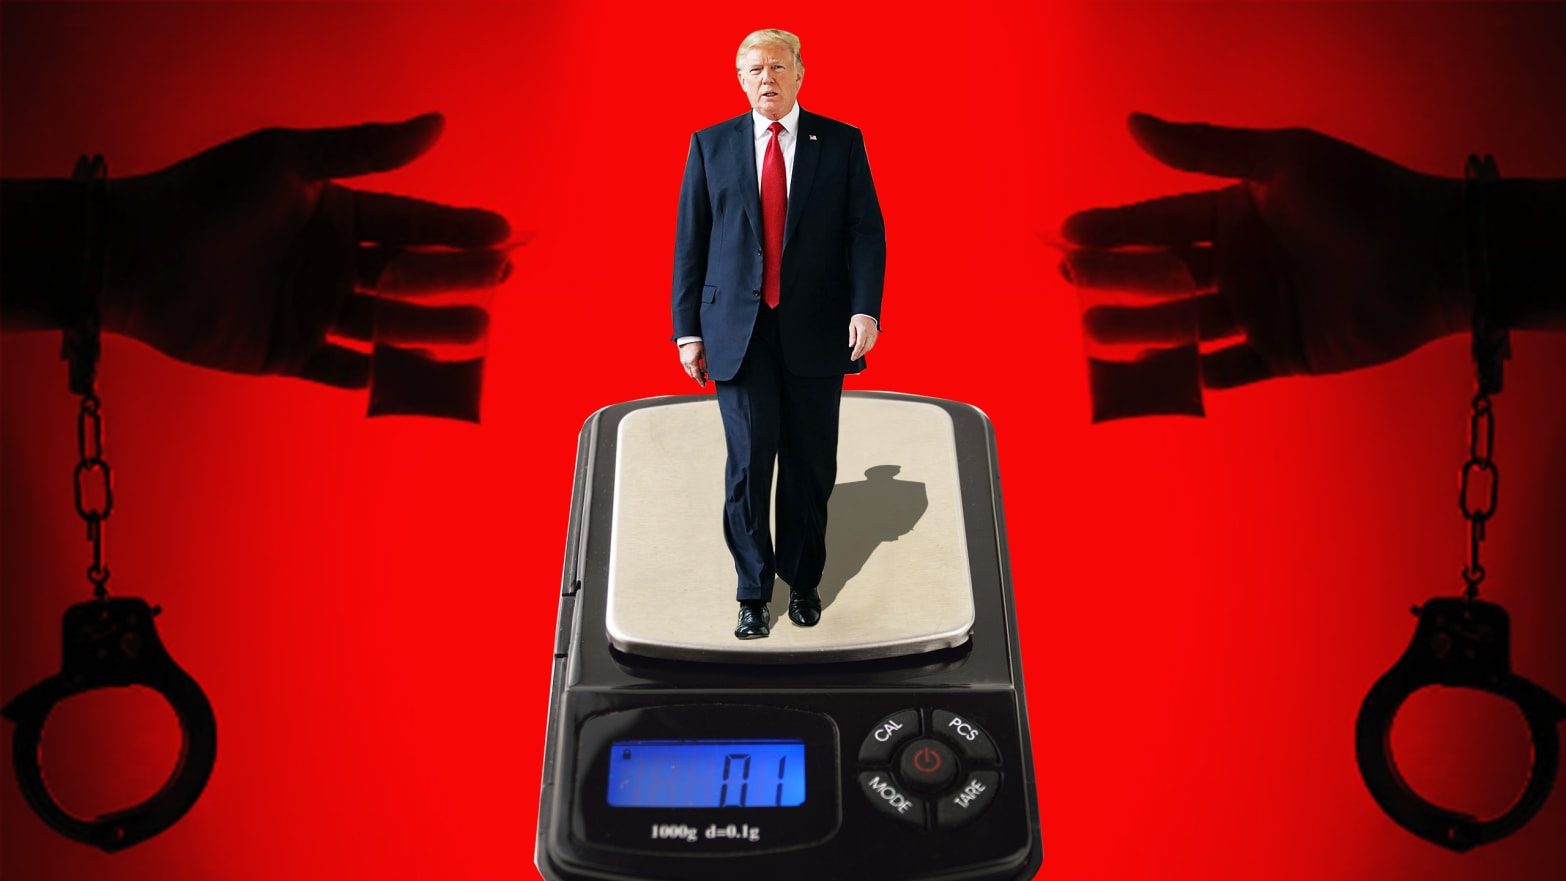 Trump, Who Talks About Executing Drug Dealers, Vouched For